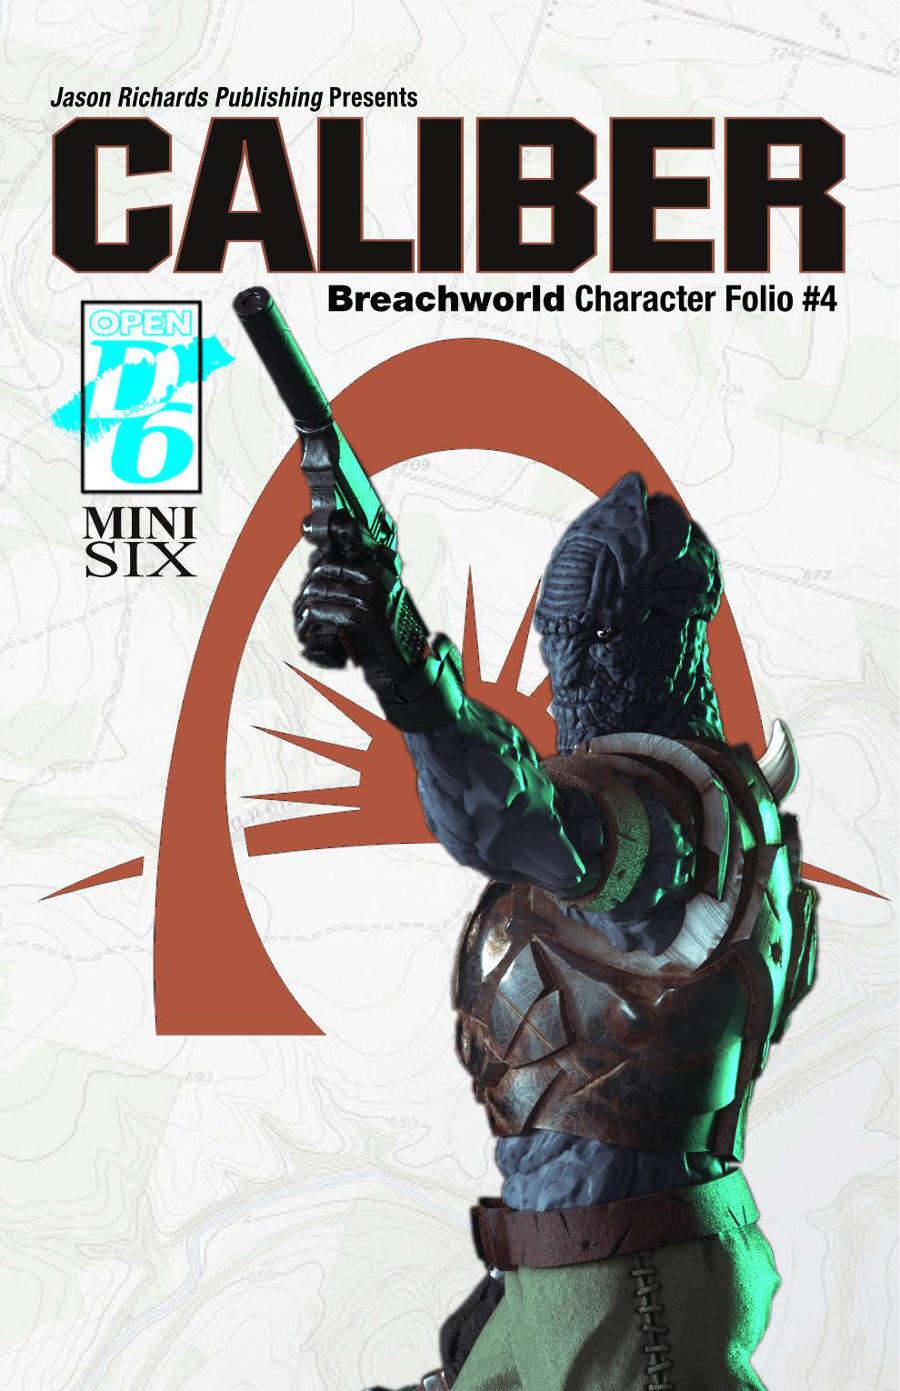 Breachworld Character Folio #4 - Caliber